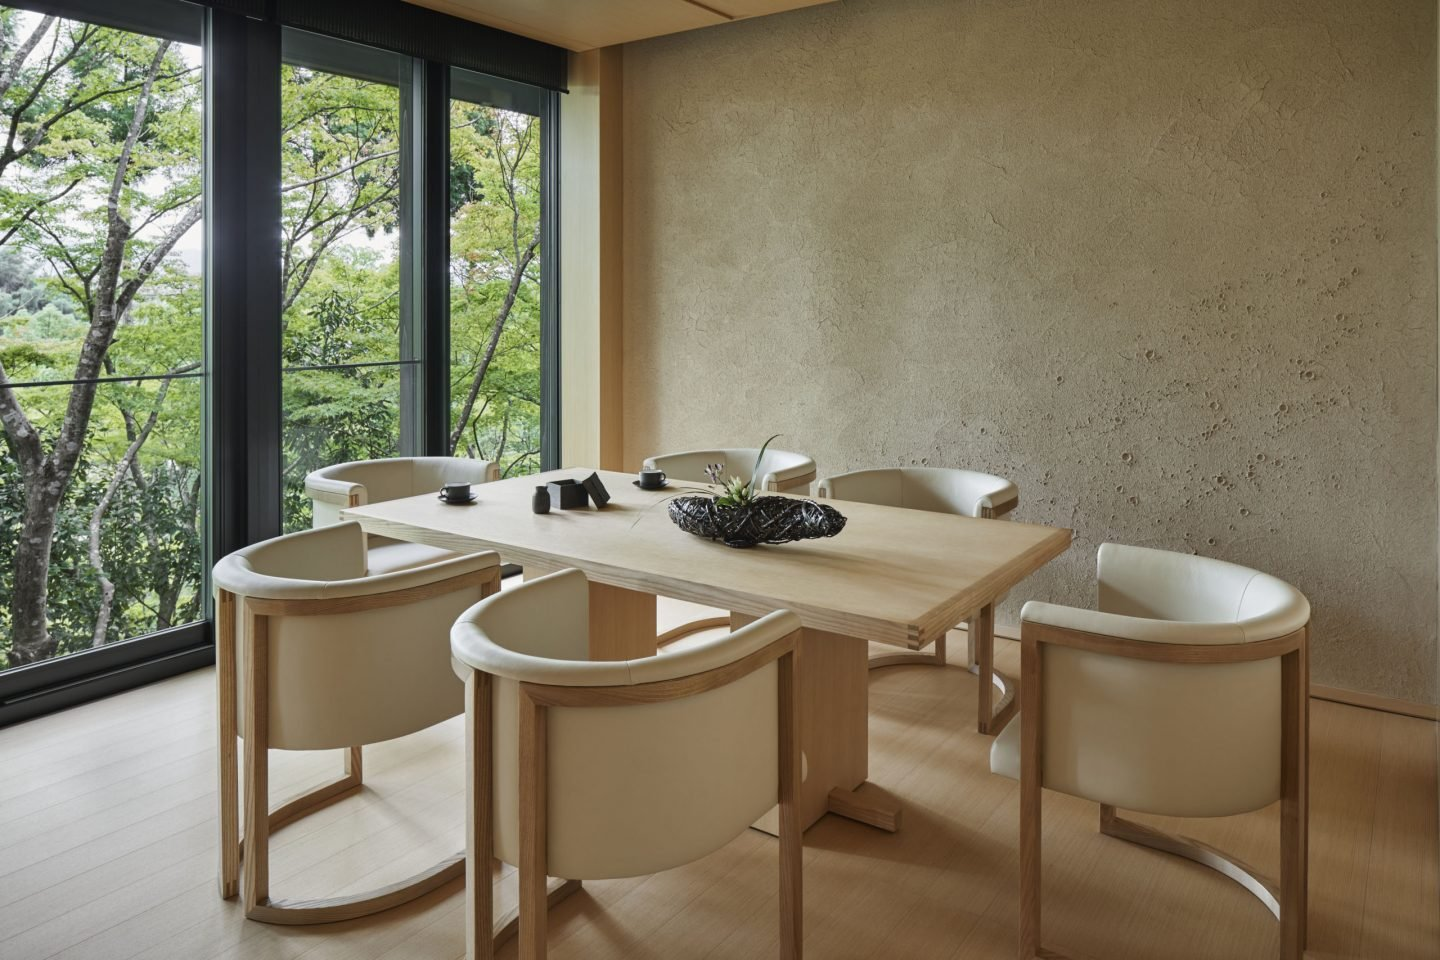 Aman Kyoto, Japan - Washigamine Pavilion Dining Room